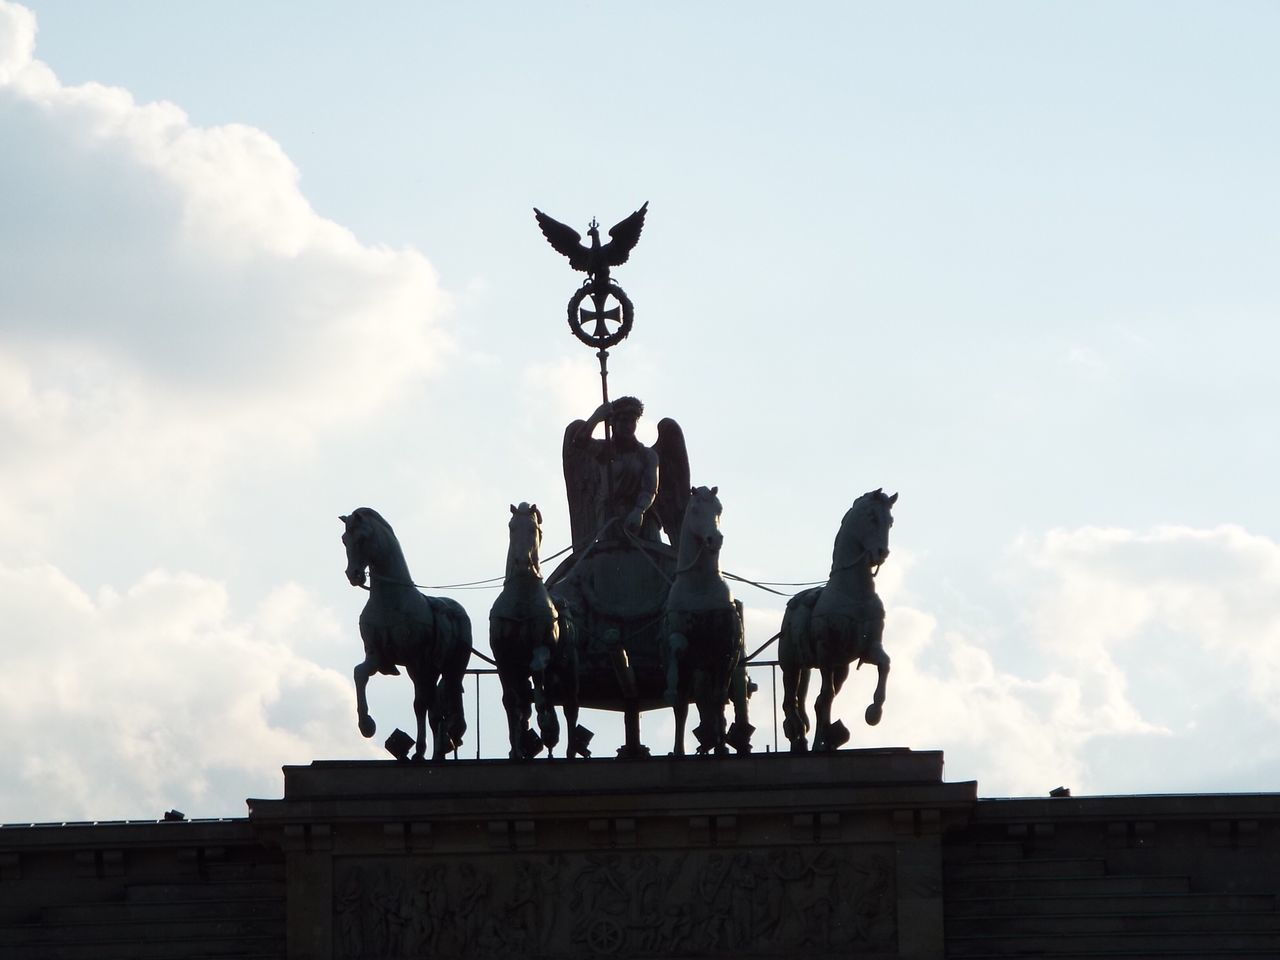 Statue Sculpture Horse Art And Craft Sky Human Representation Cloud - Sky Creativity Horseback Riding Male Likeness Low Angle View History Built Structure Outdoors Architecture Day Warrior - Person No People King - Royal Person The Great Outdoors - 2017 EyeEm Awards